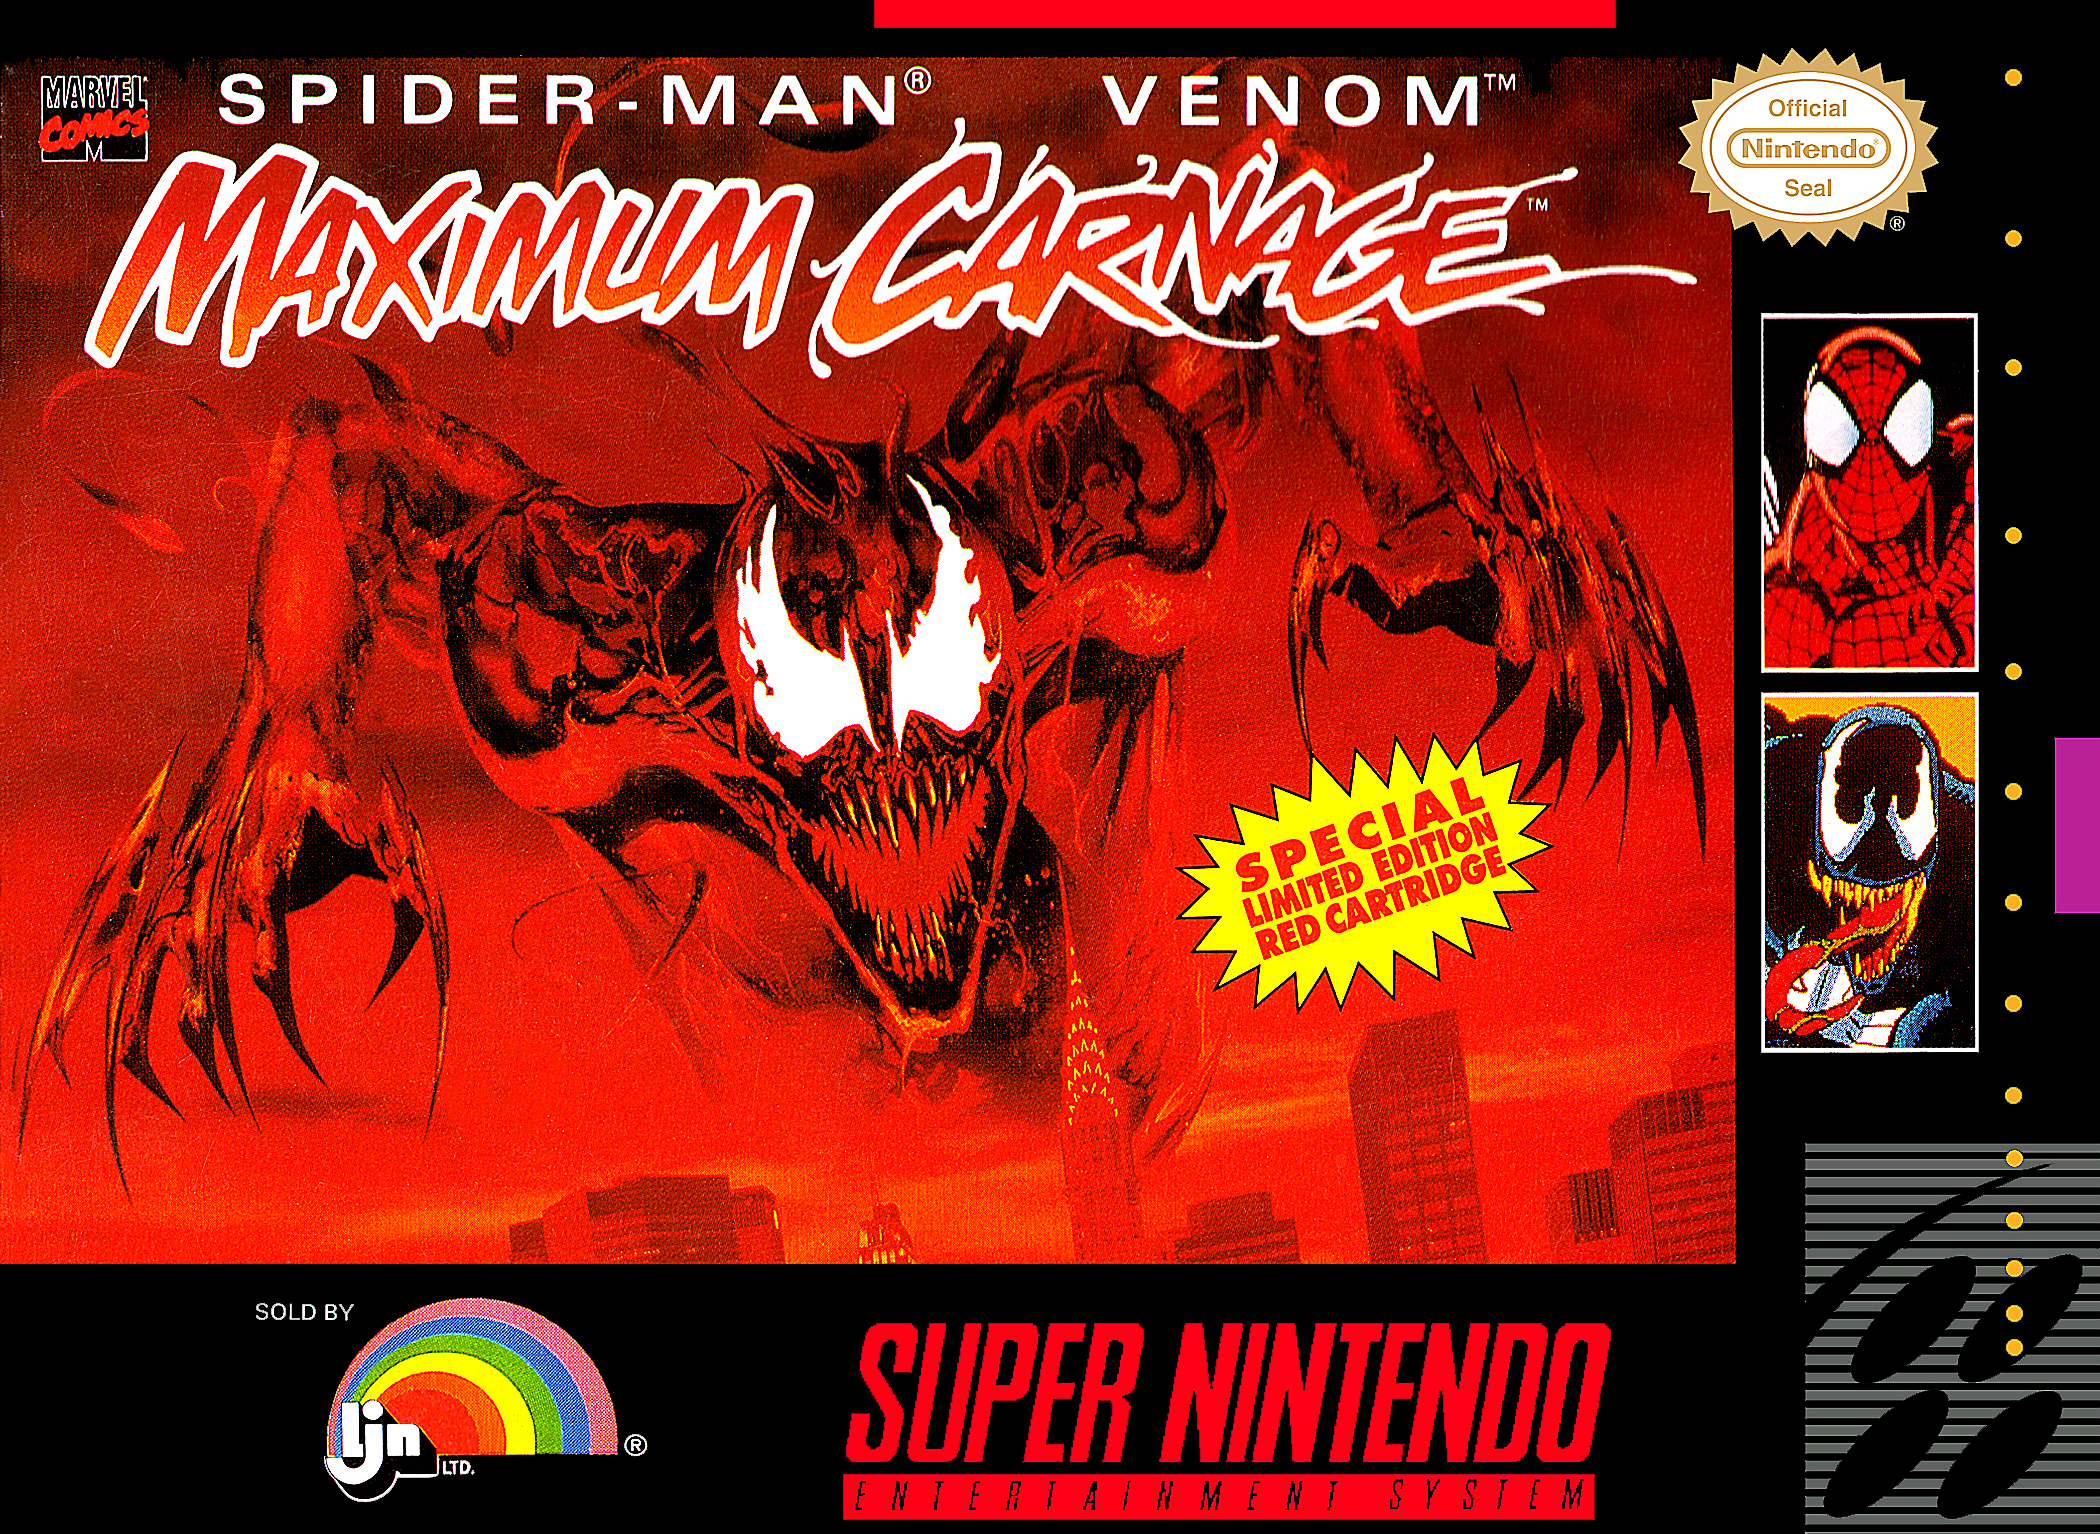 2364781-snes_spidermanvenommaximumcarnage.jpg